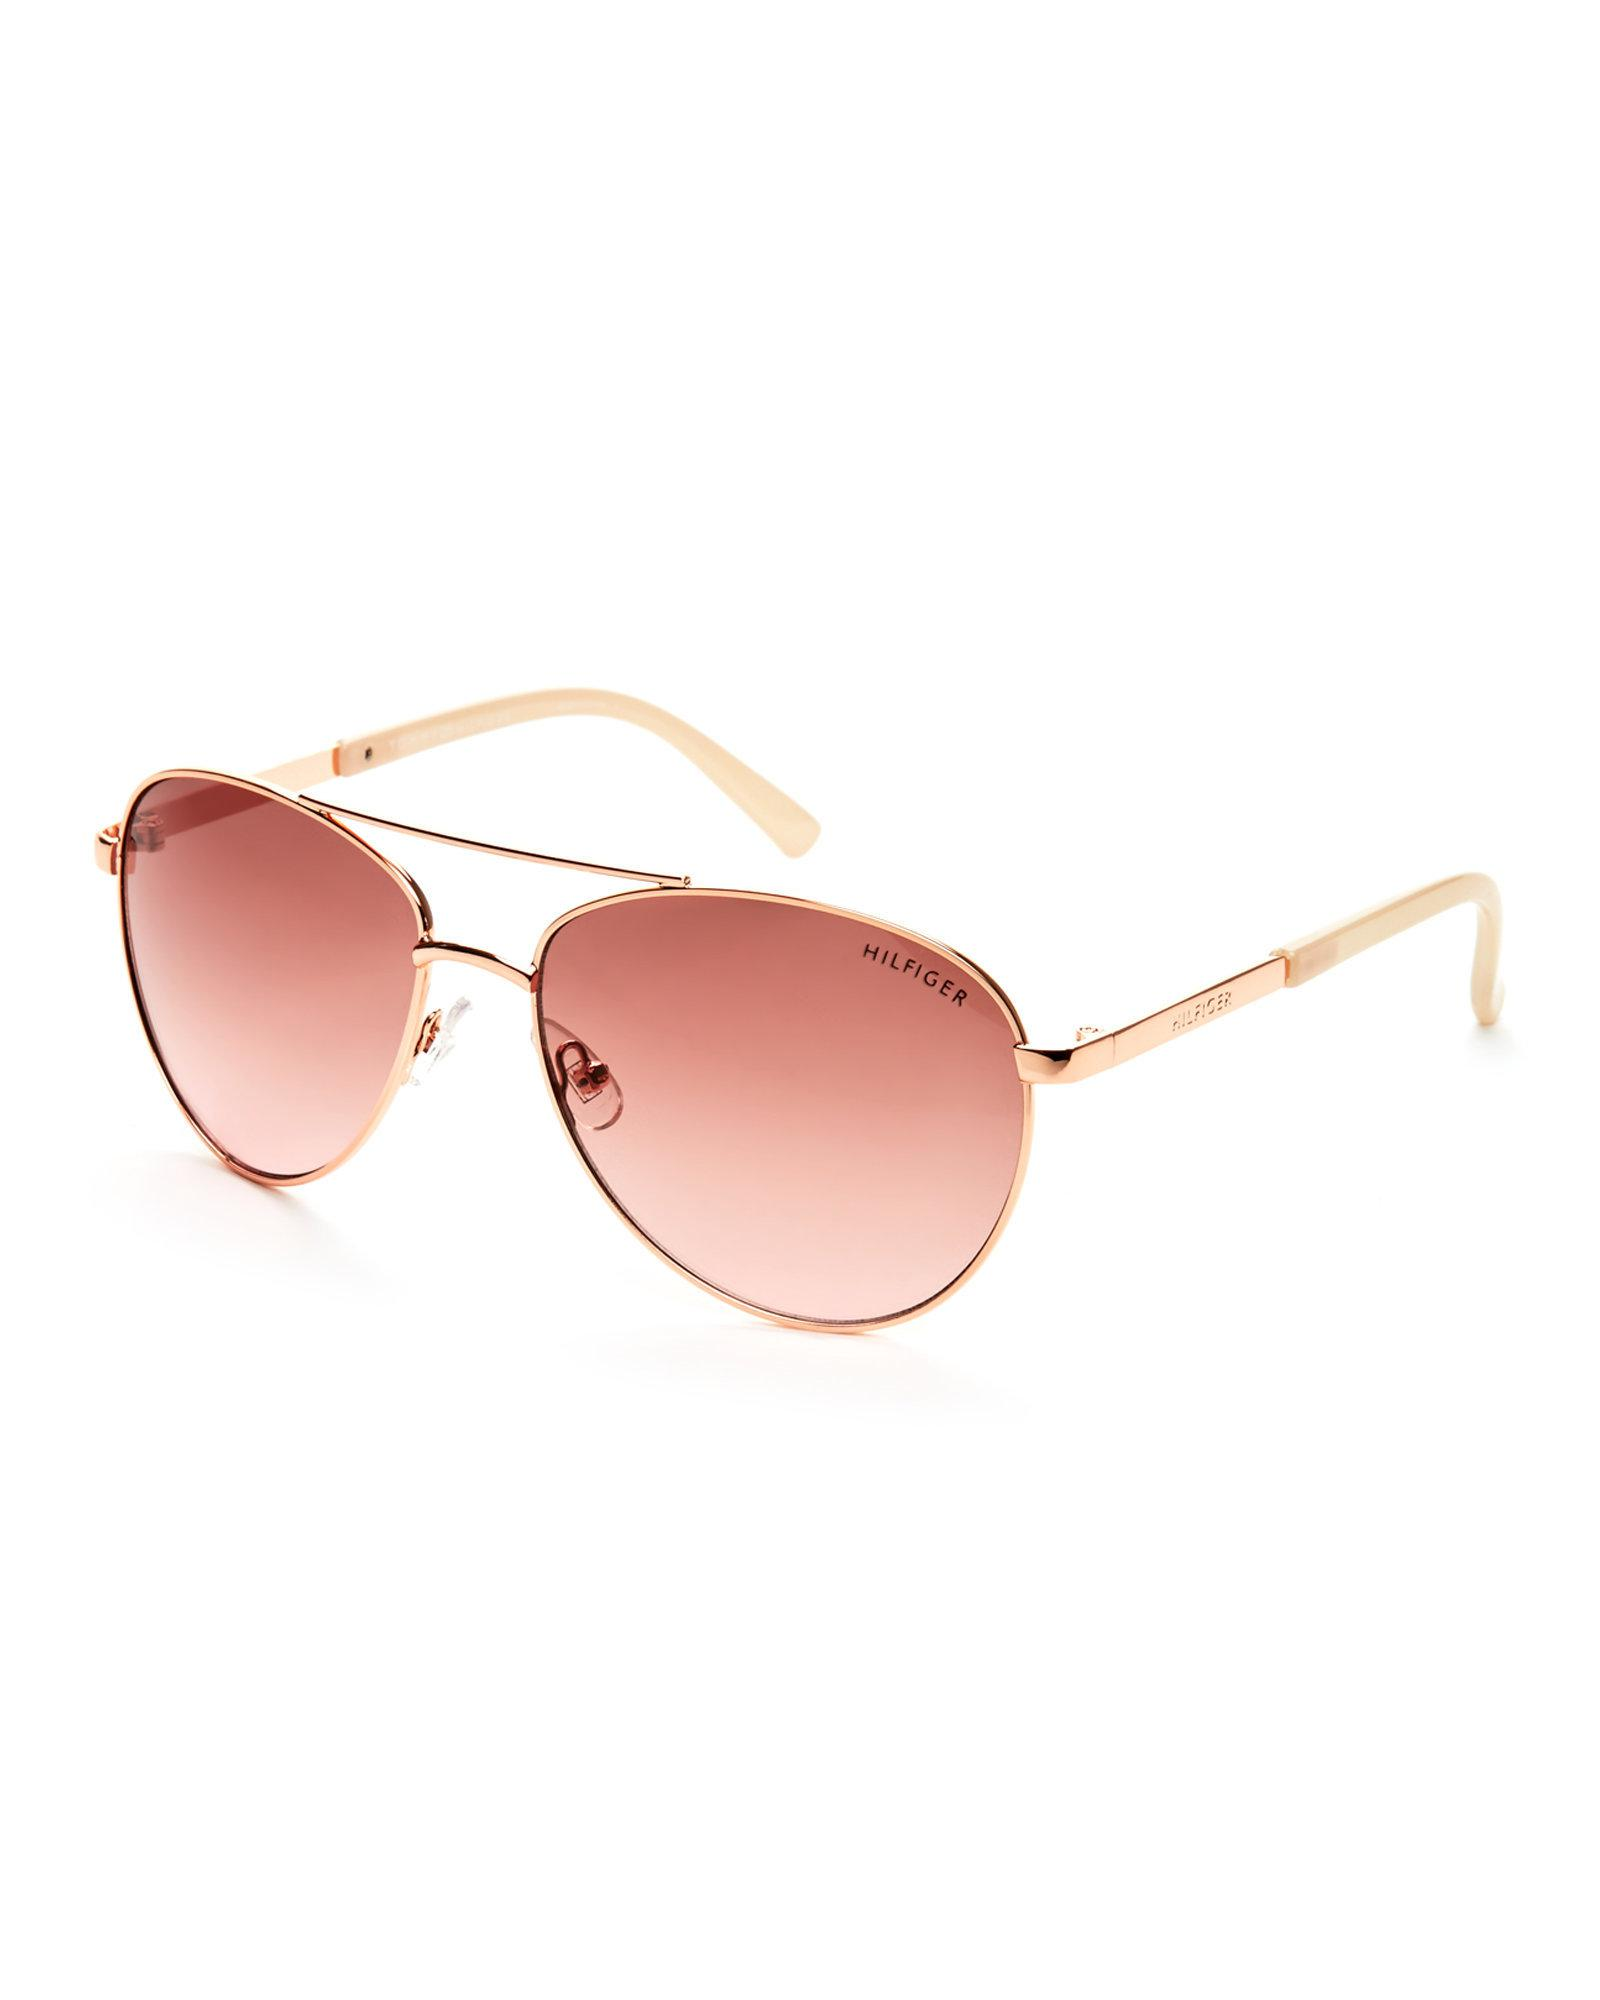 423dbc4e67 Lyst - Tommy Hilfiger Rose Gold-Tone Lindsay Aviator Sunglasses in Pink